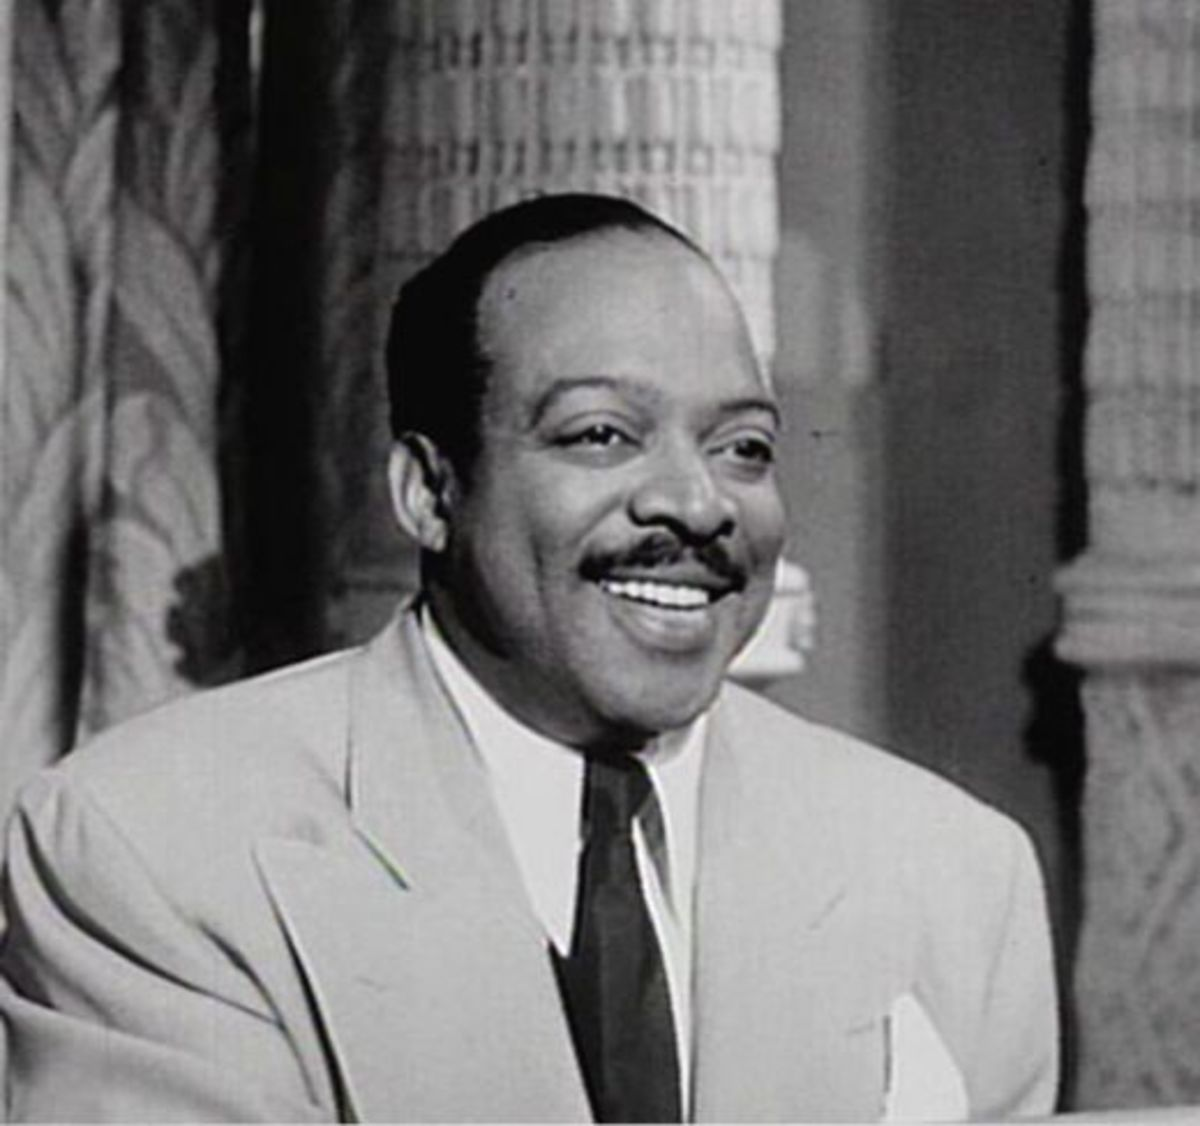 Count Basie is remembered by many who worked with him as being considerate of musicians and their opinion, modest, relaxed, fun loving, drily-witty, and always enthusiastic about his music. He said that  he thinks that the band can really swing when